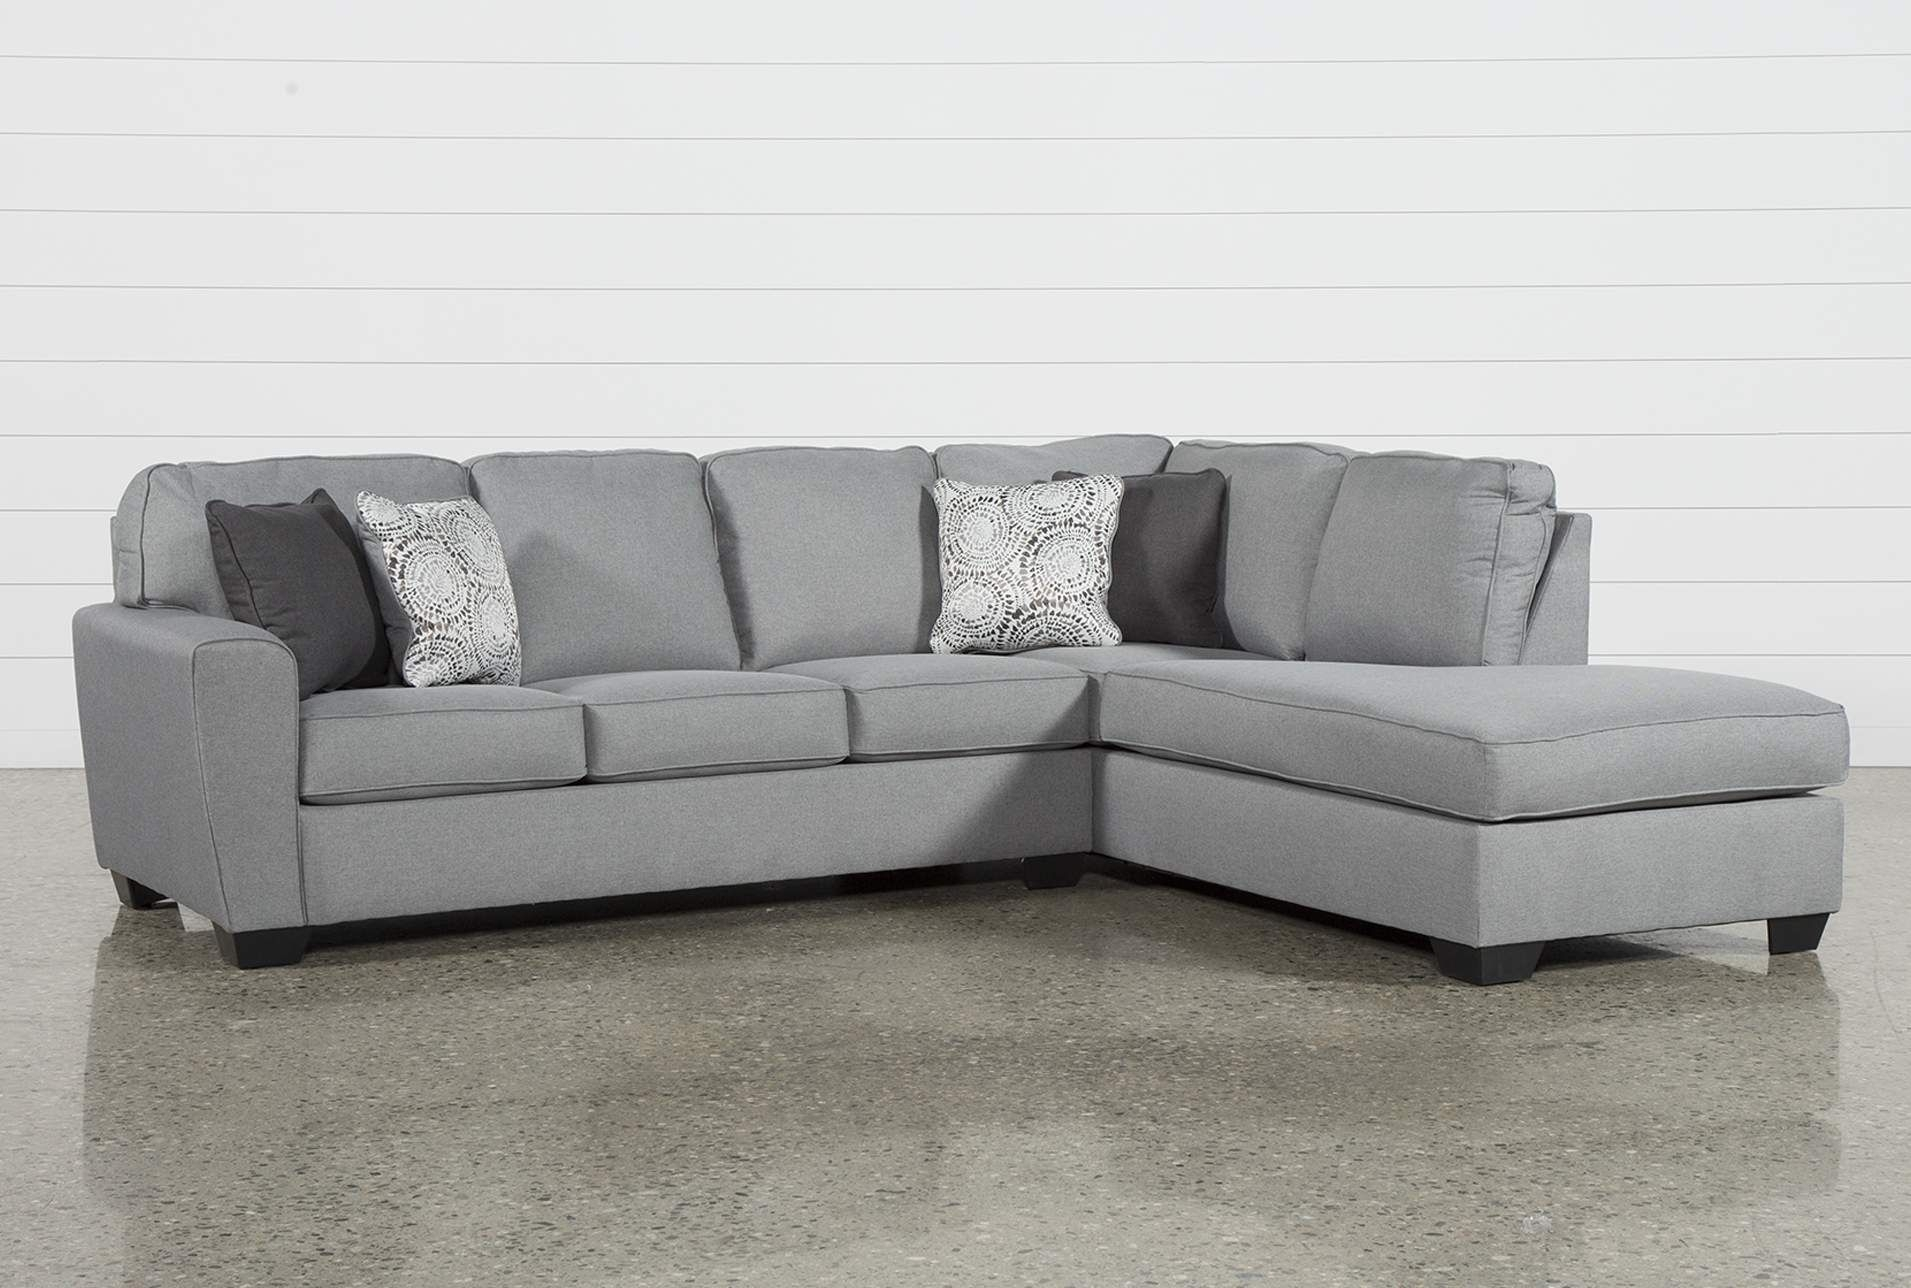 Mcdade Ash 2 Piece Sectional W/raf Chaise | Ash And Products Inside Josephine 2 Piece Sectionals With Raf Sofa (View 16 of 25)